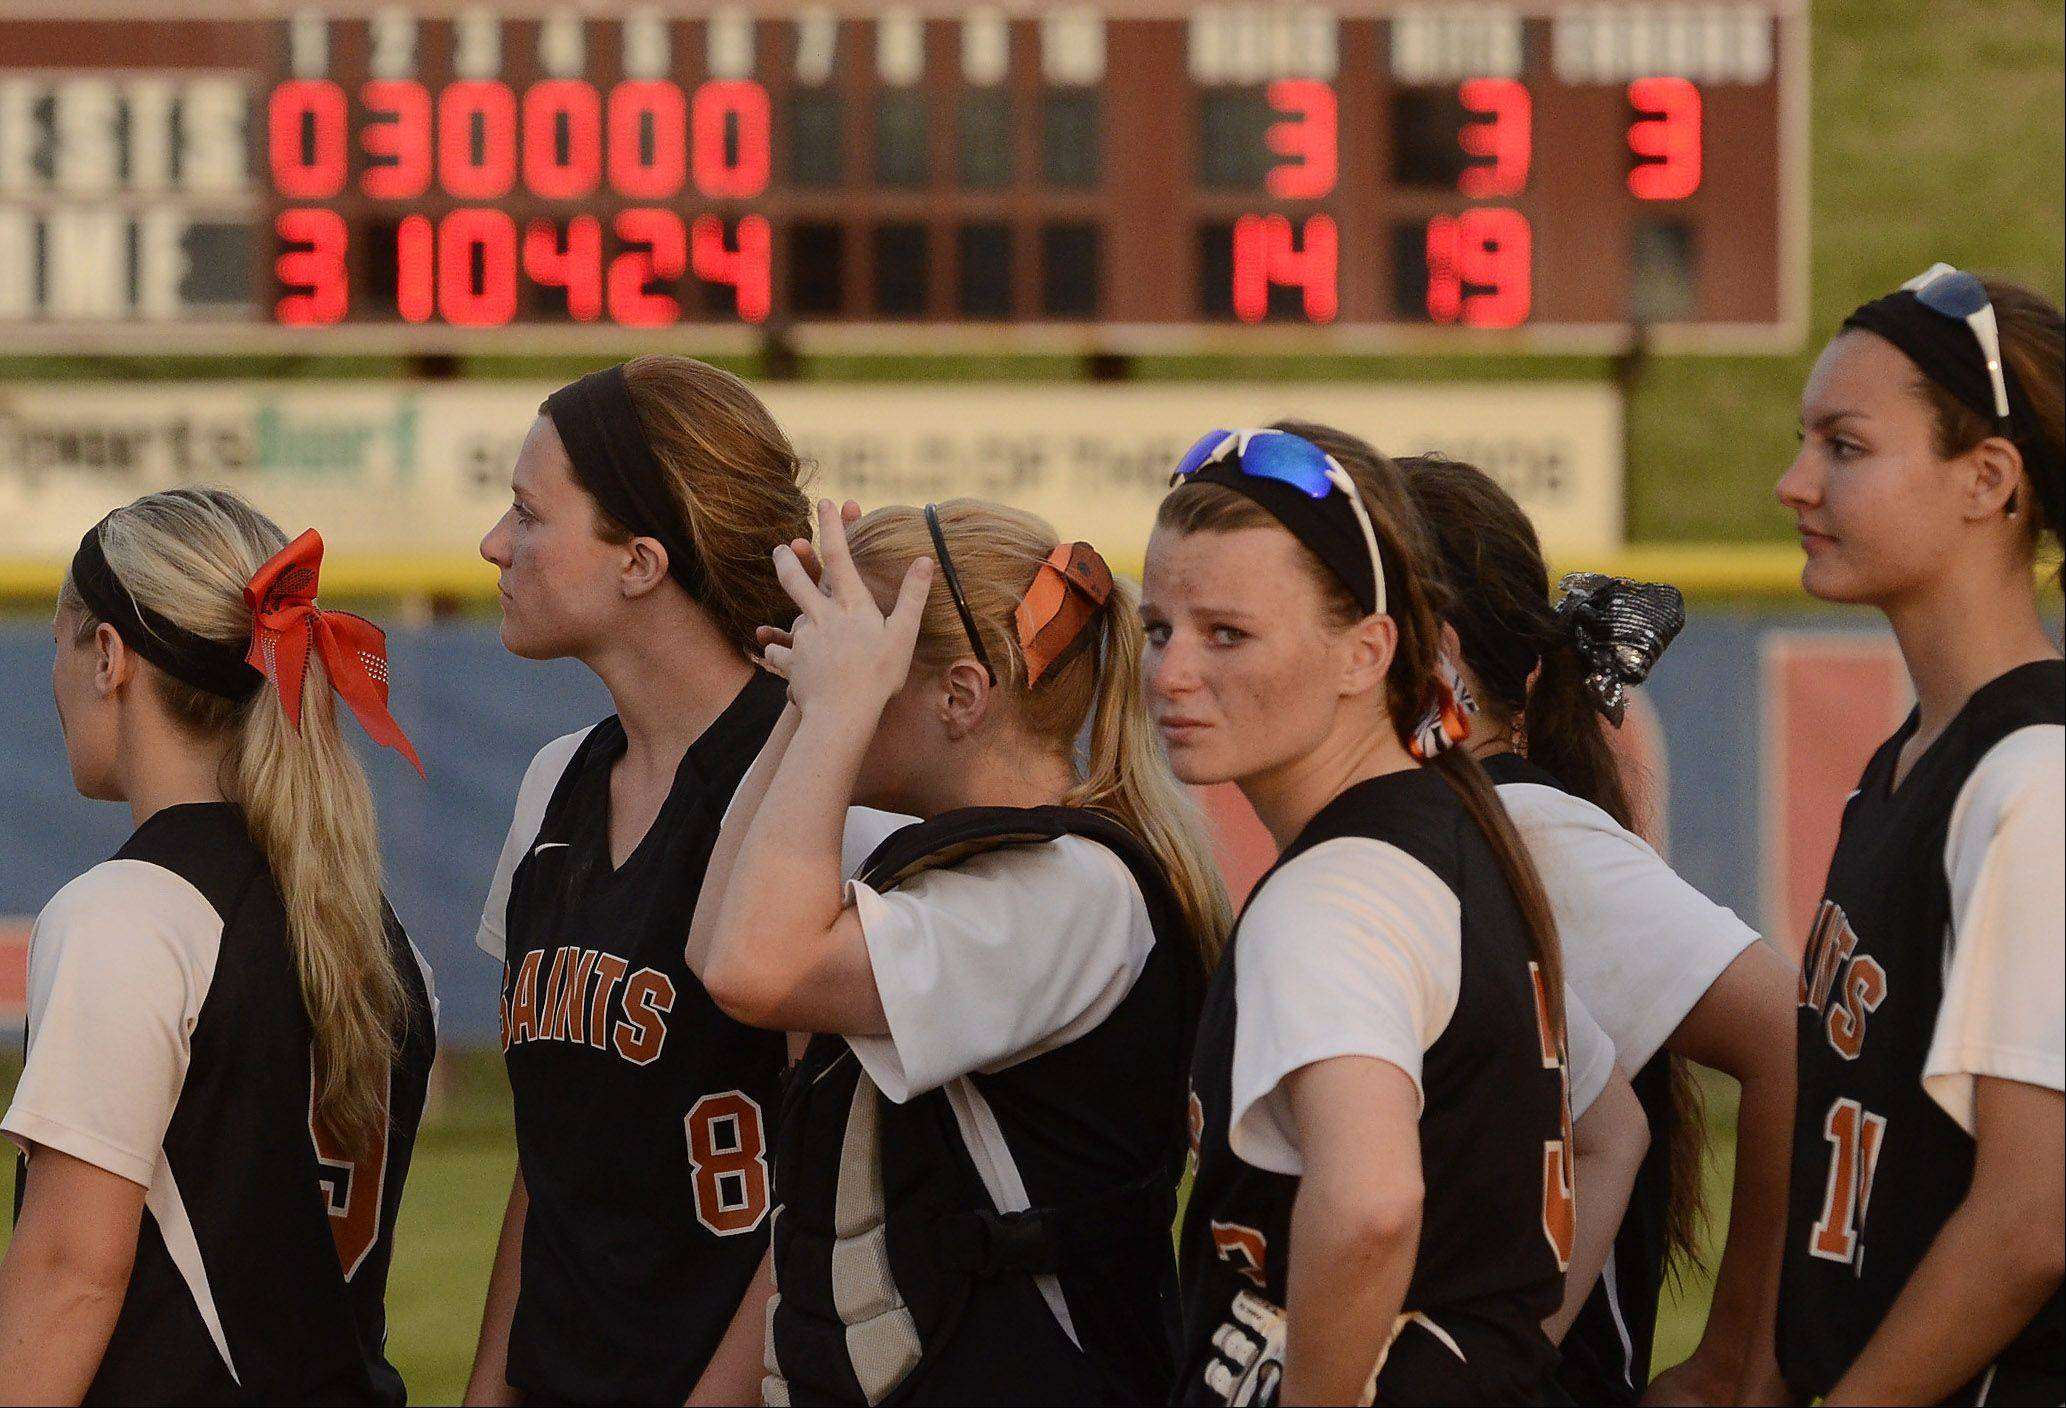 The scoreboard says it all, St. Charles East gets blown out by Minooka 14-3 in the Class 4A softball championship game.